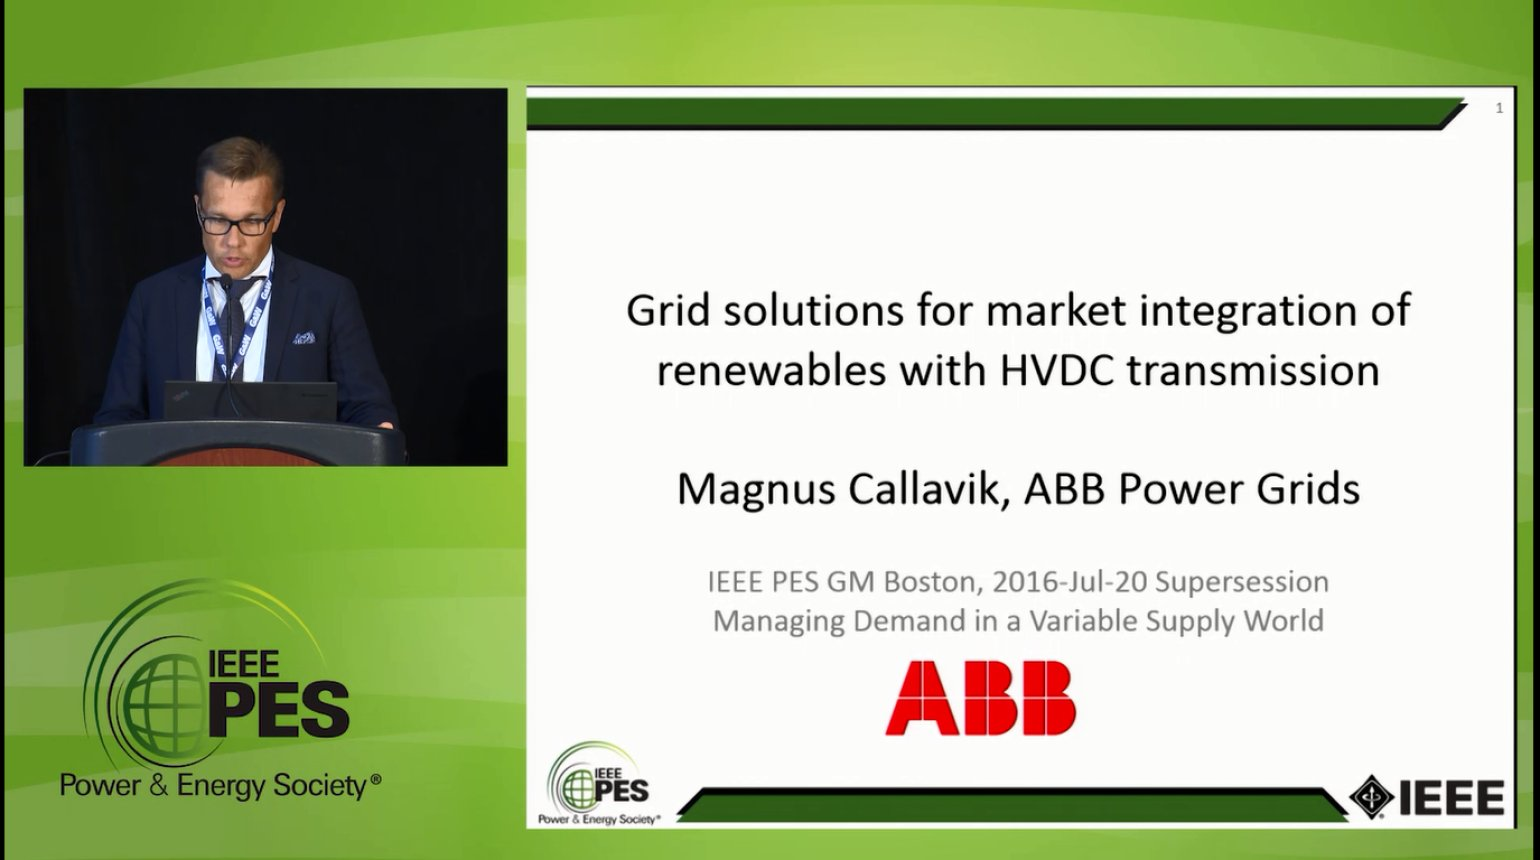 Managing Demand in a Variable Supply World - Grid solutions for market integration of renewables with HVDC transmission (Video)